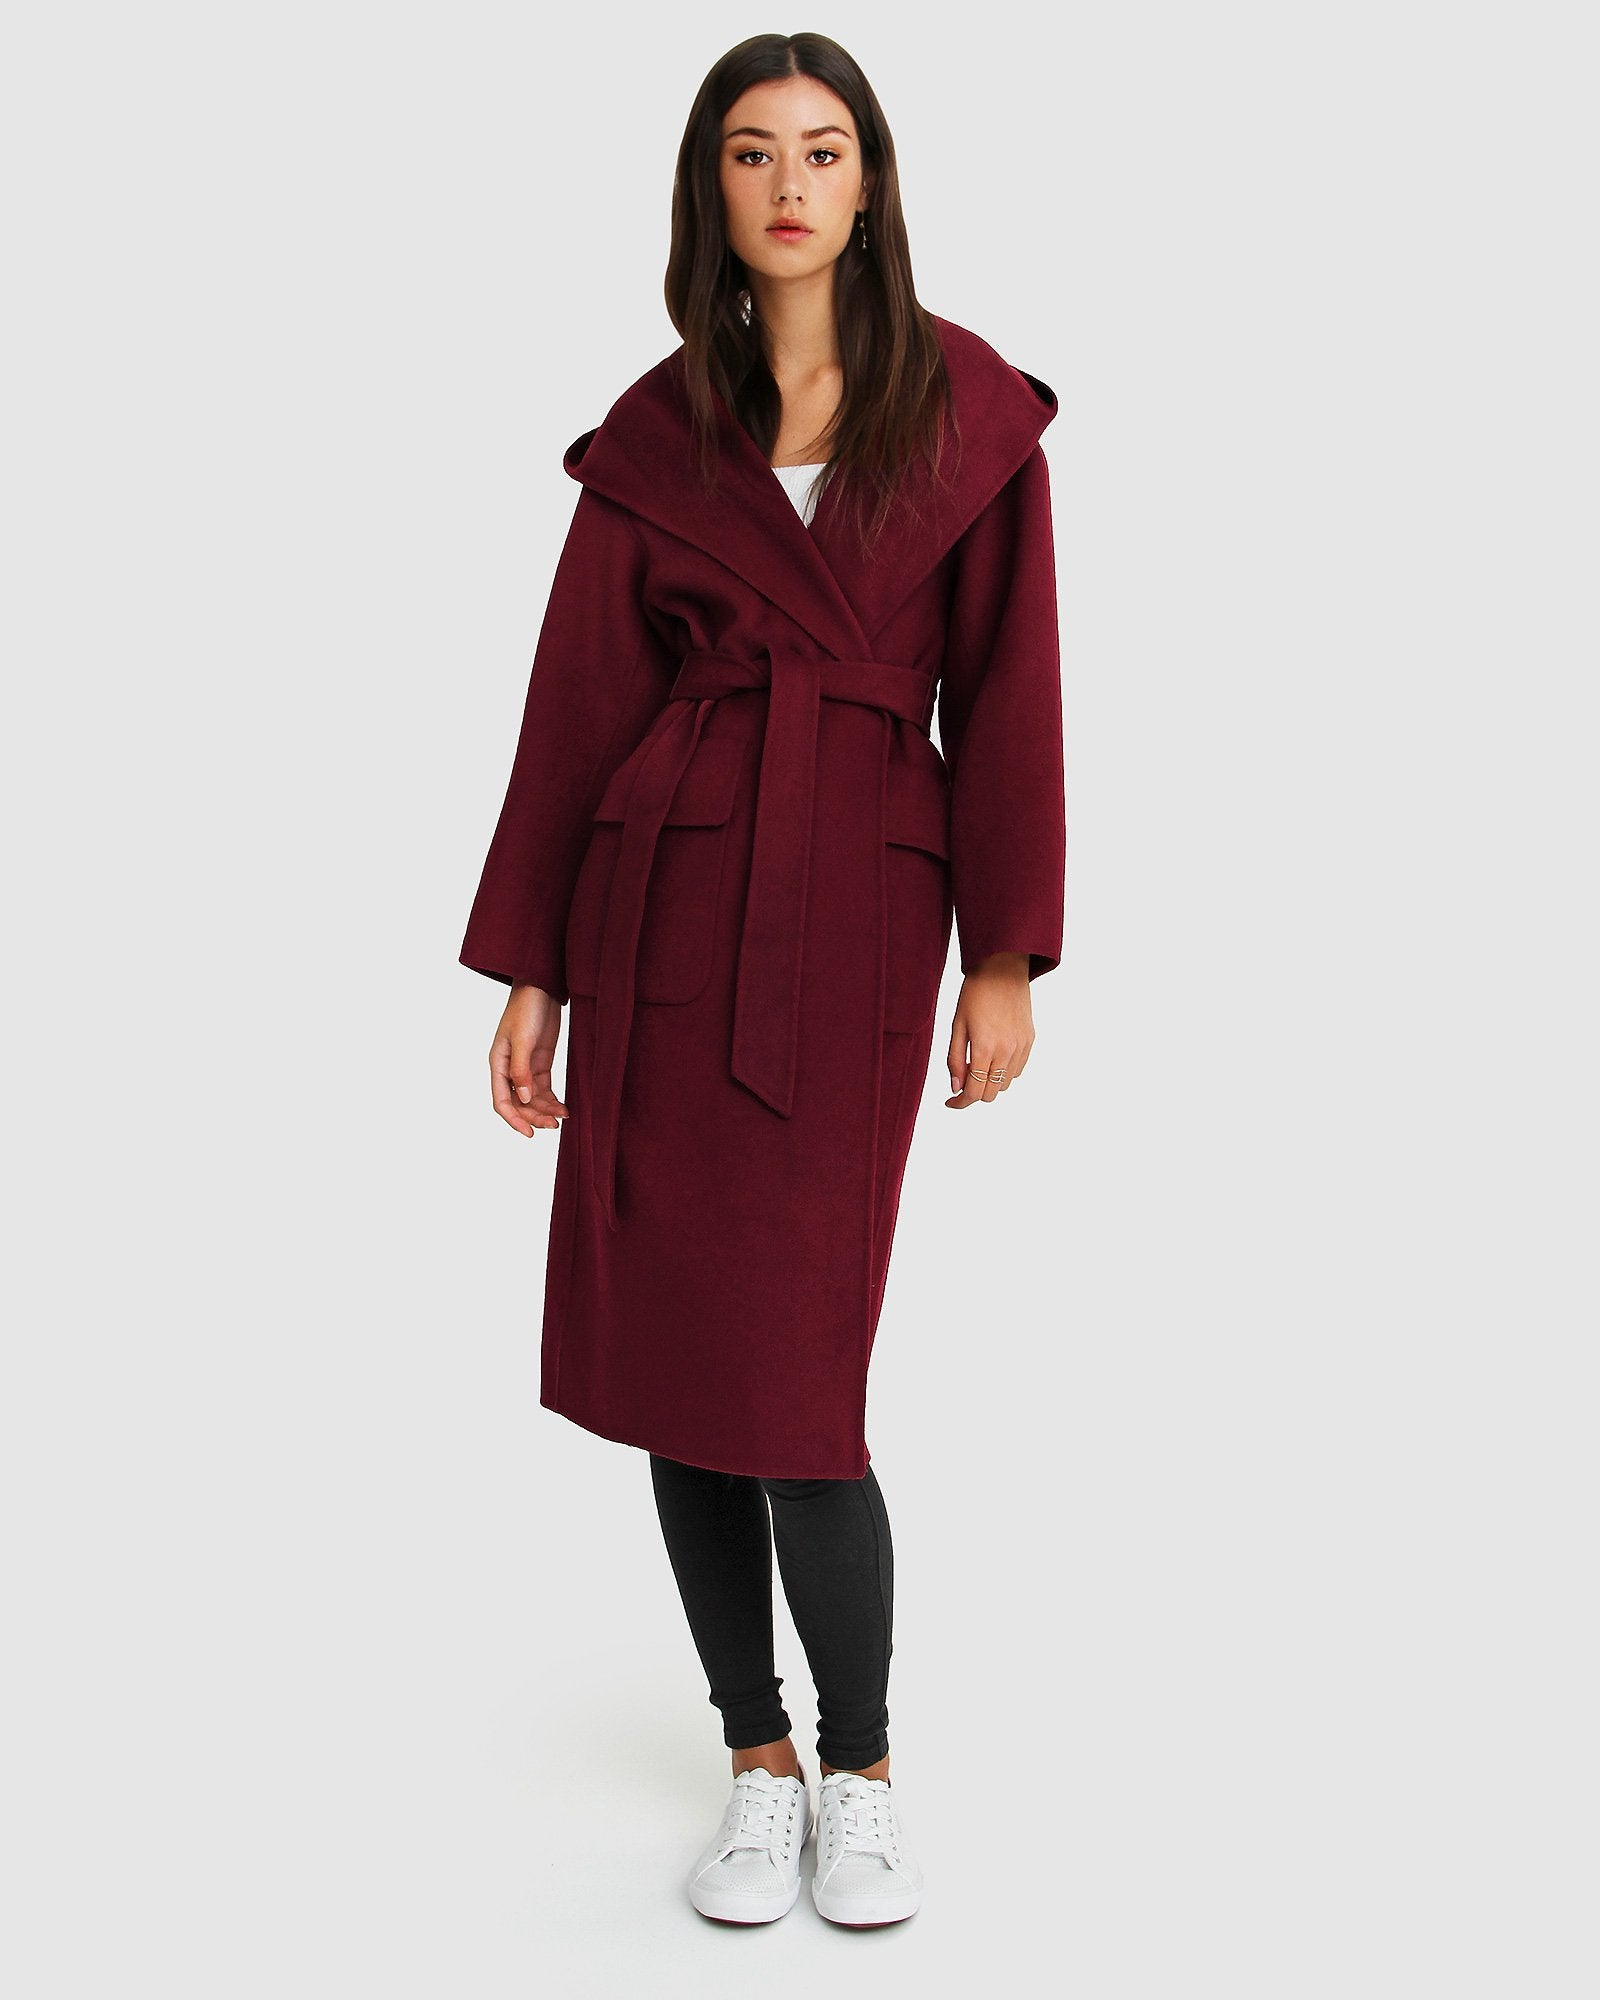 Runaway Wool Blend Robe Coat - Purple